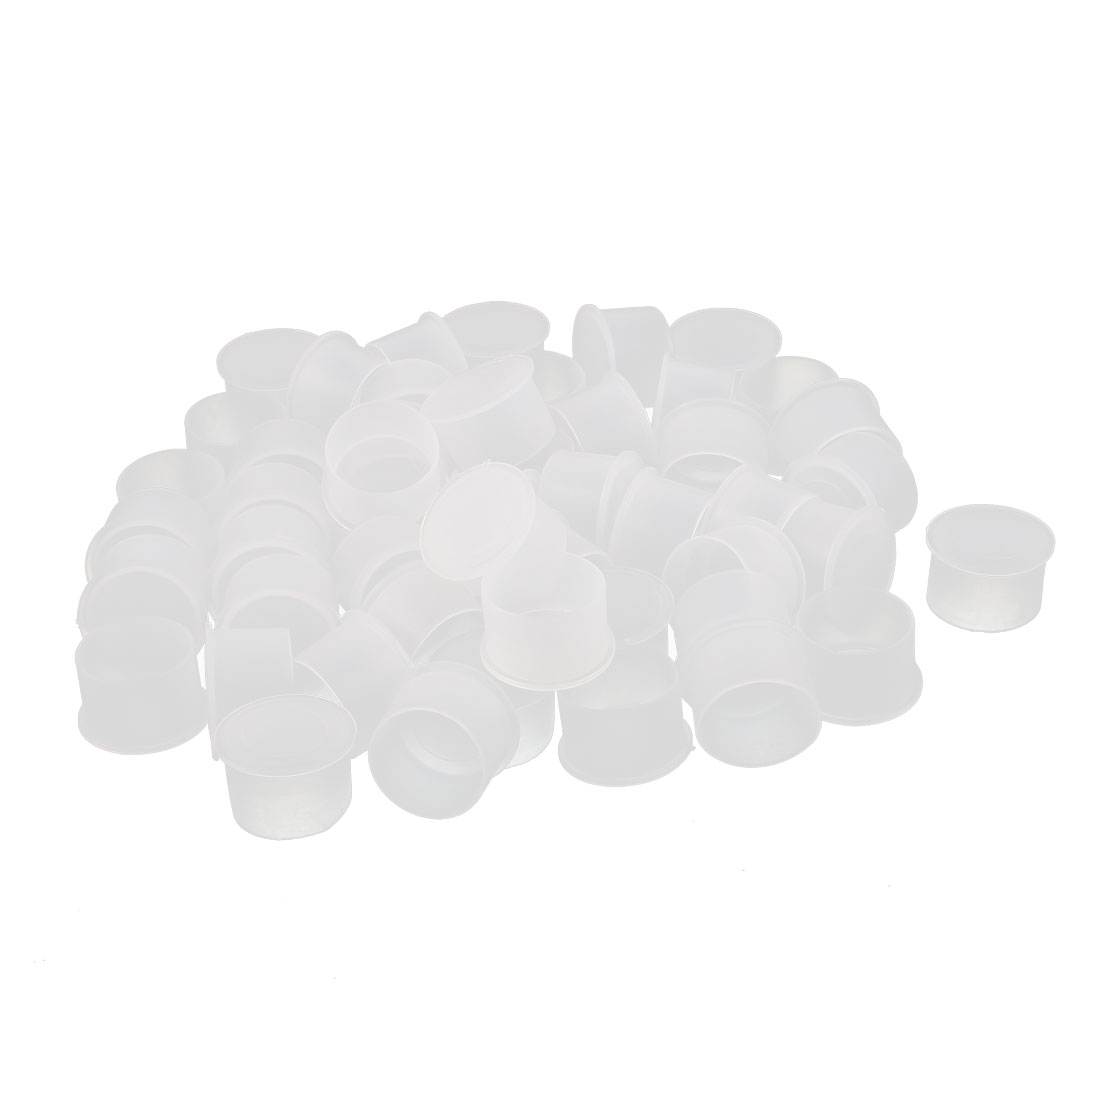 50Pcs 22mm Inner Dia PVC Insulated End Cap Wire Cable Tube Cover Protector